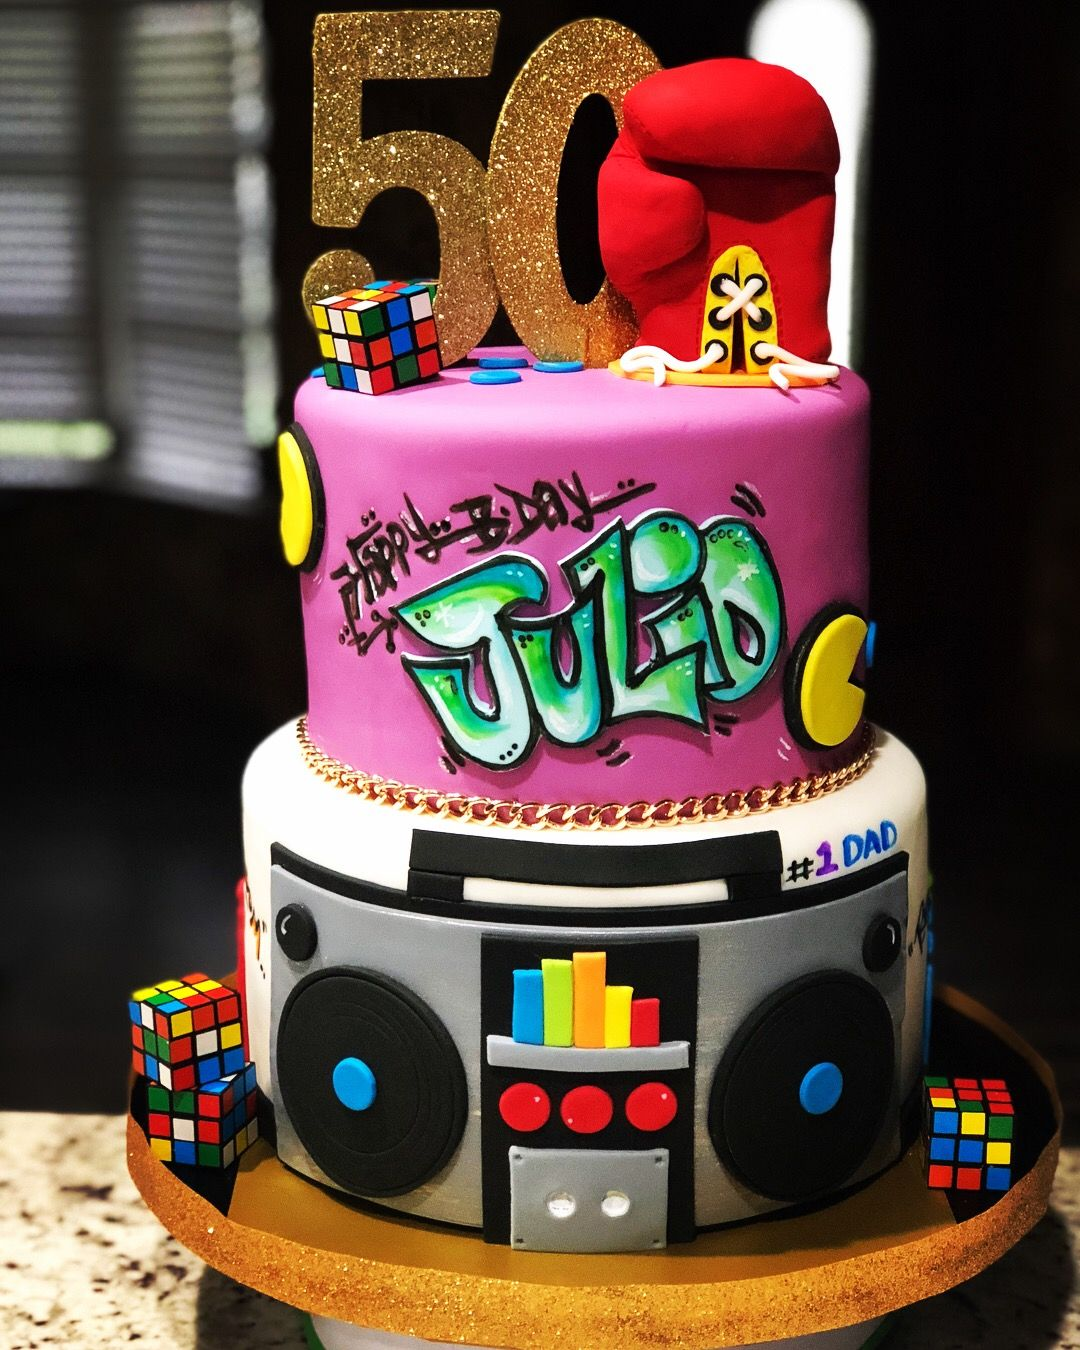 Awe Inspiring 80S Theme Birthday Cake With Rocky Glove And Boom Box With Images Funny Birthday Cards Online Barepcheapnameinfo